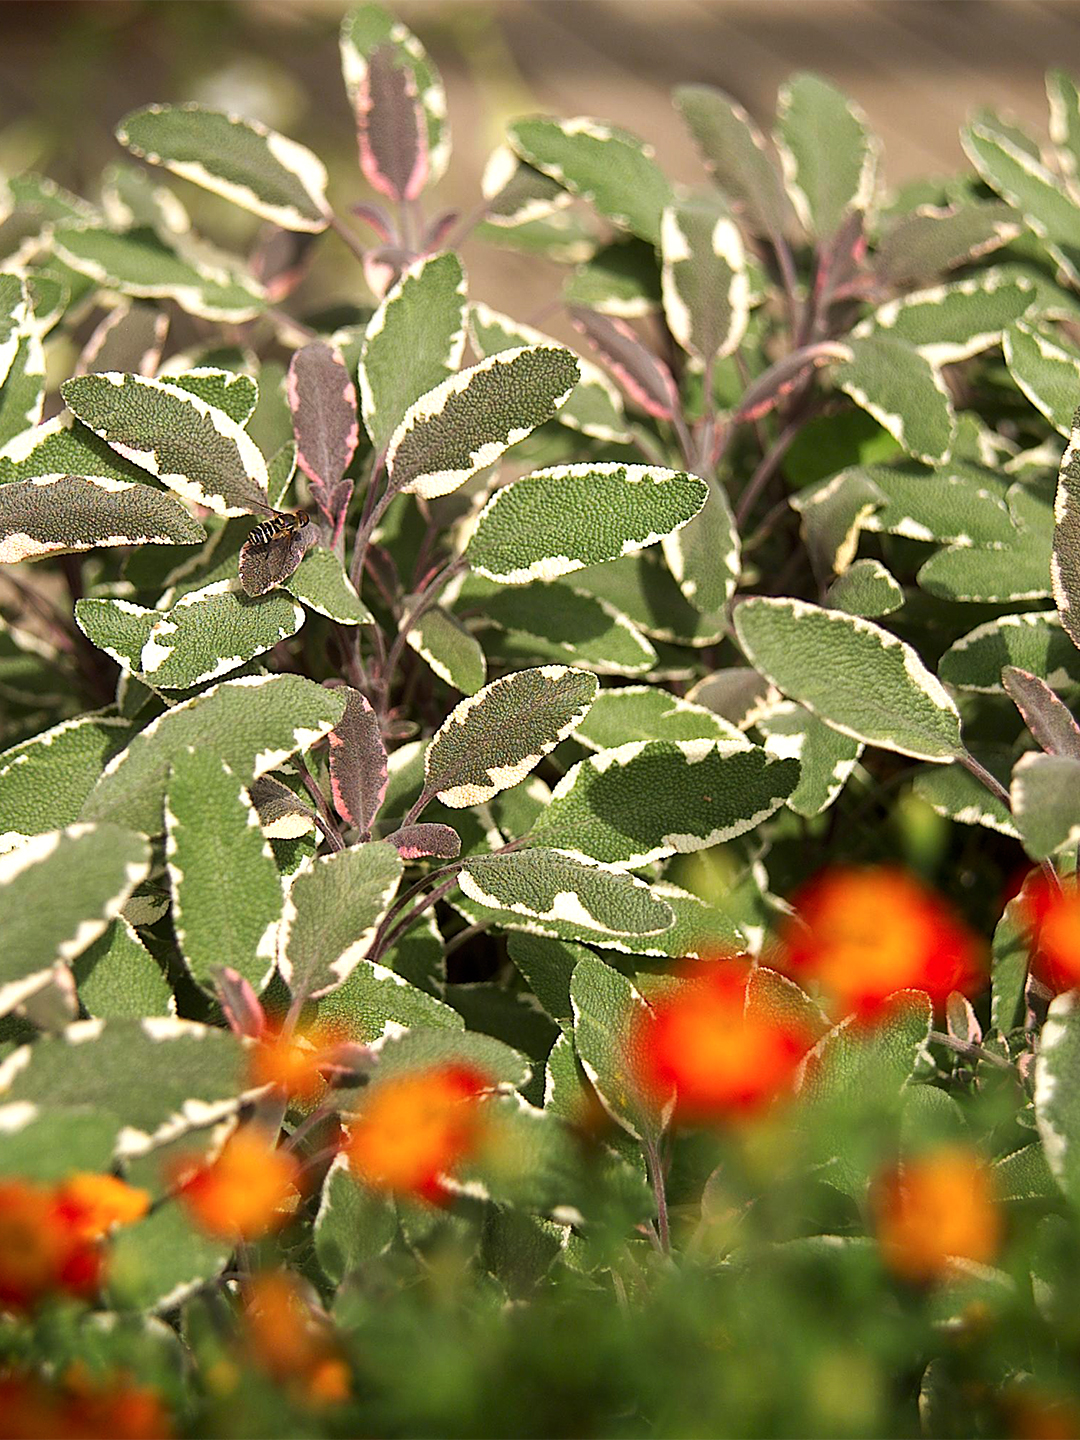 Salvia officinalis 'Tricolor' green leaves with orange flowers